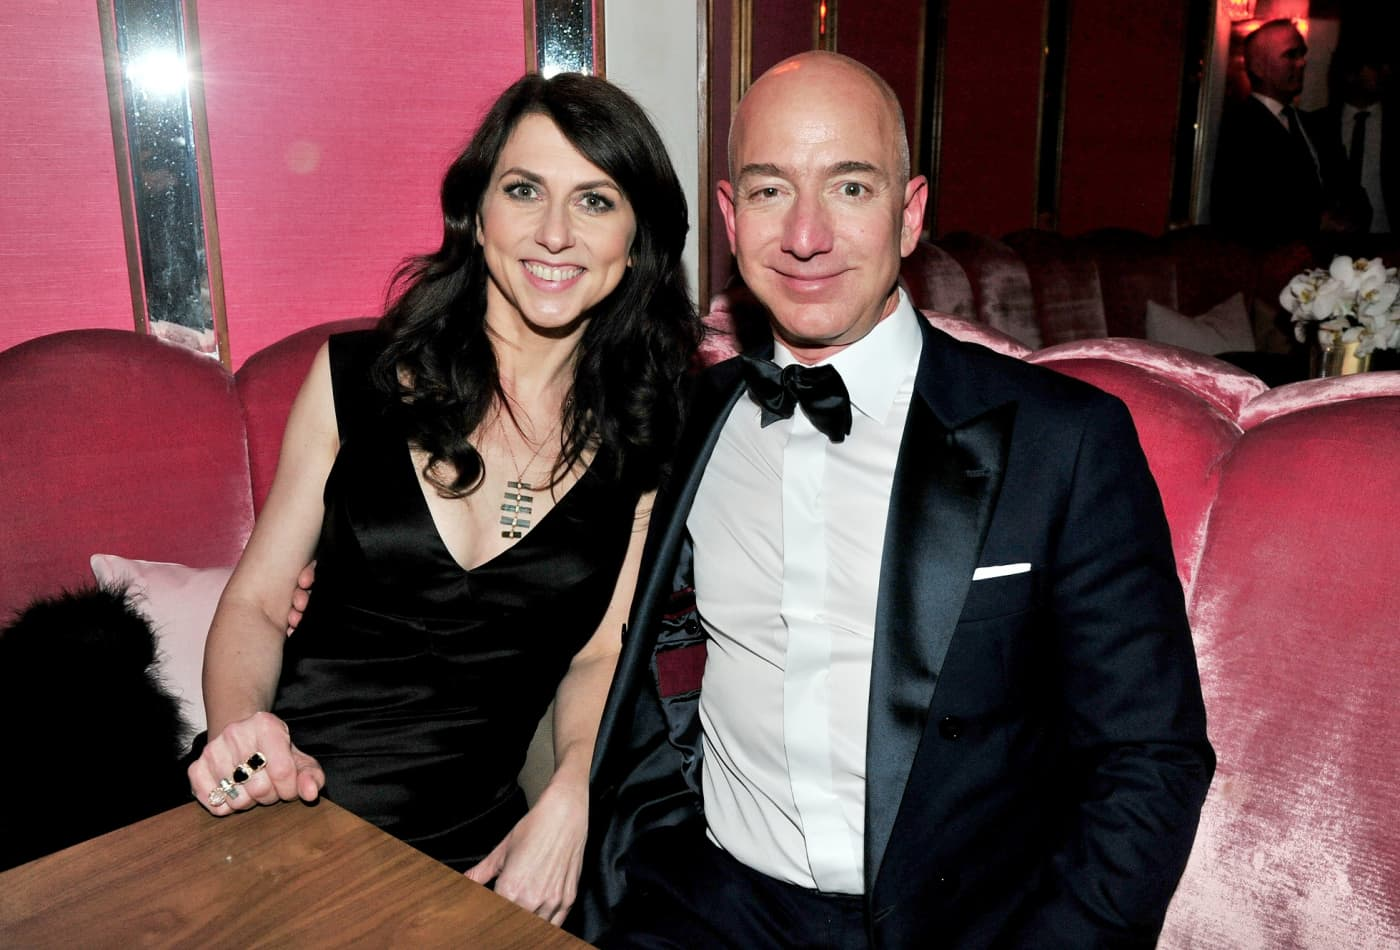 MacKenzie Bezos will become one of the richest women in the world